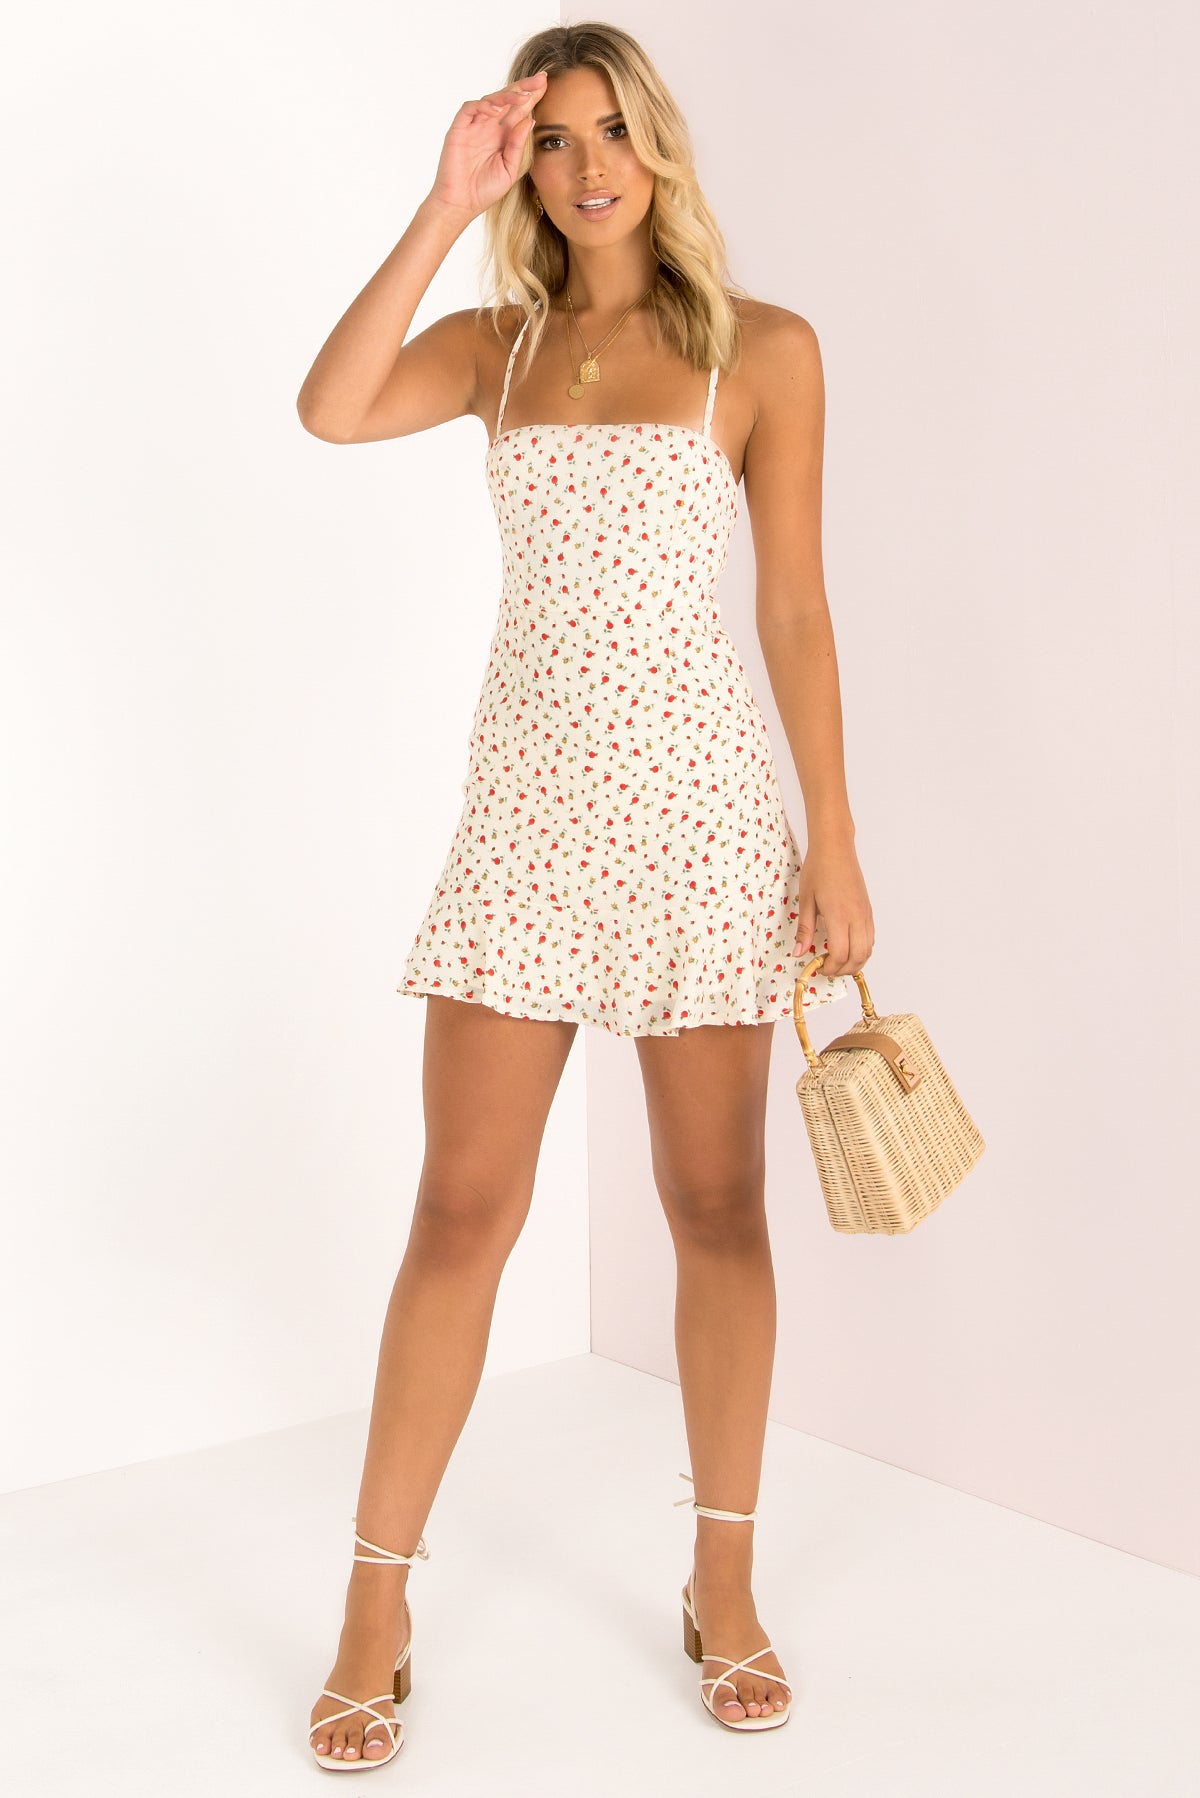 Baxter Dress / Cream